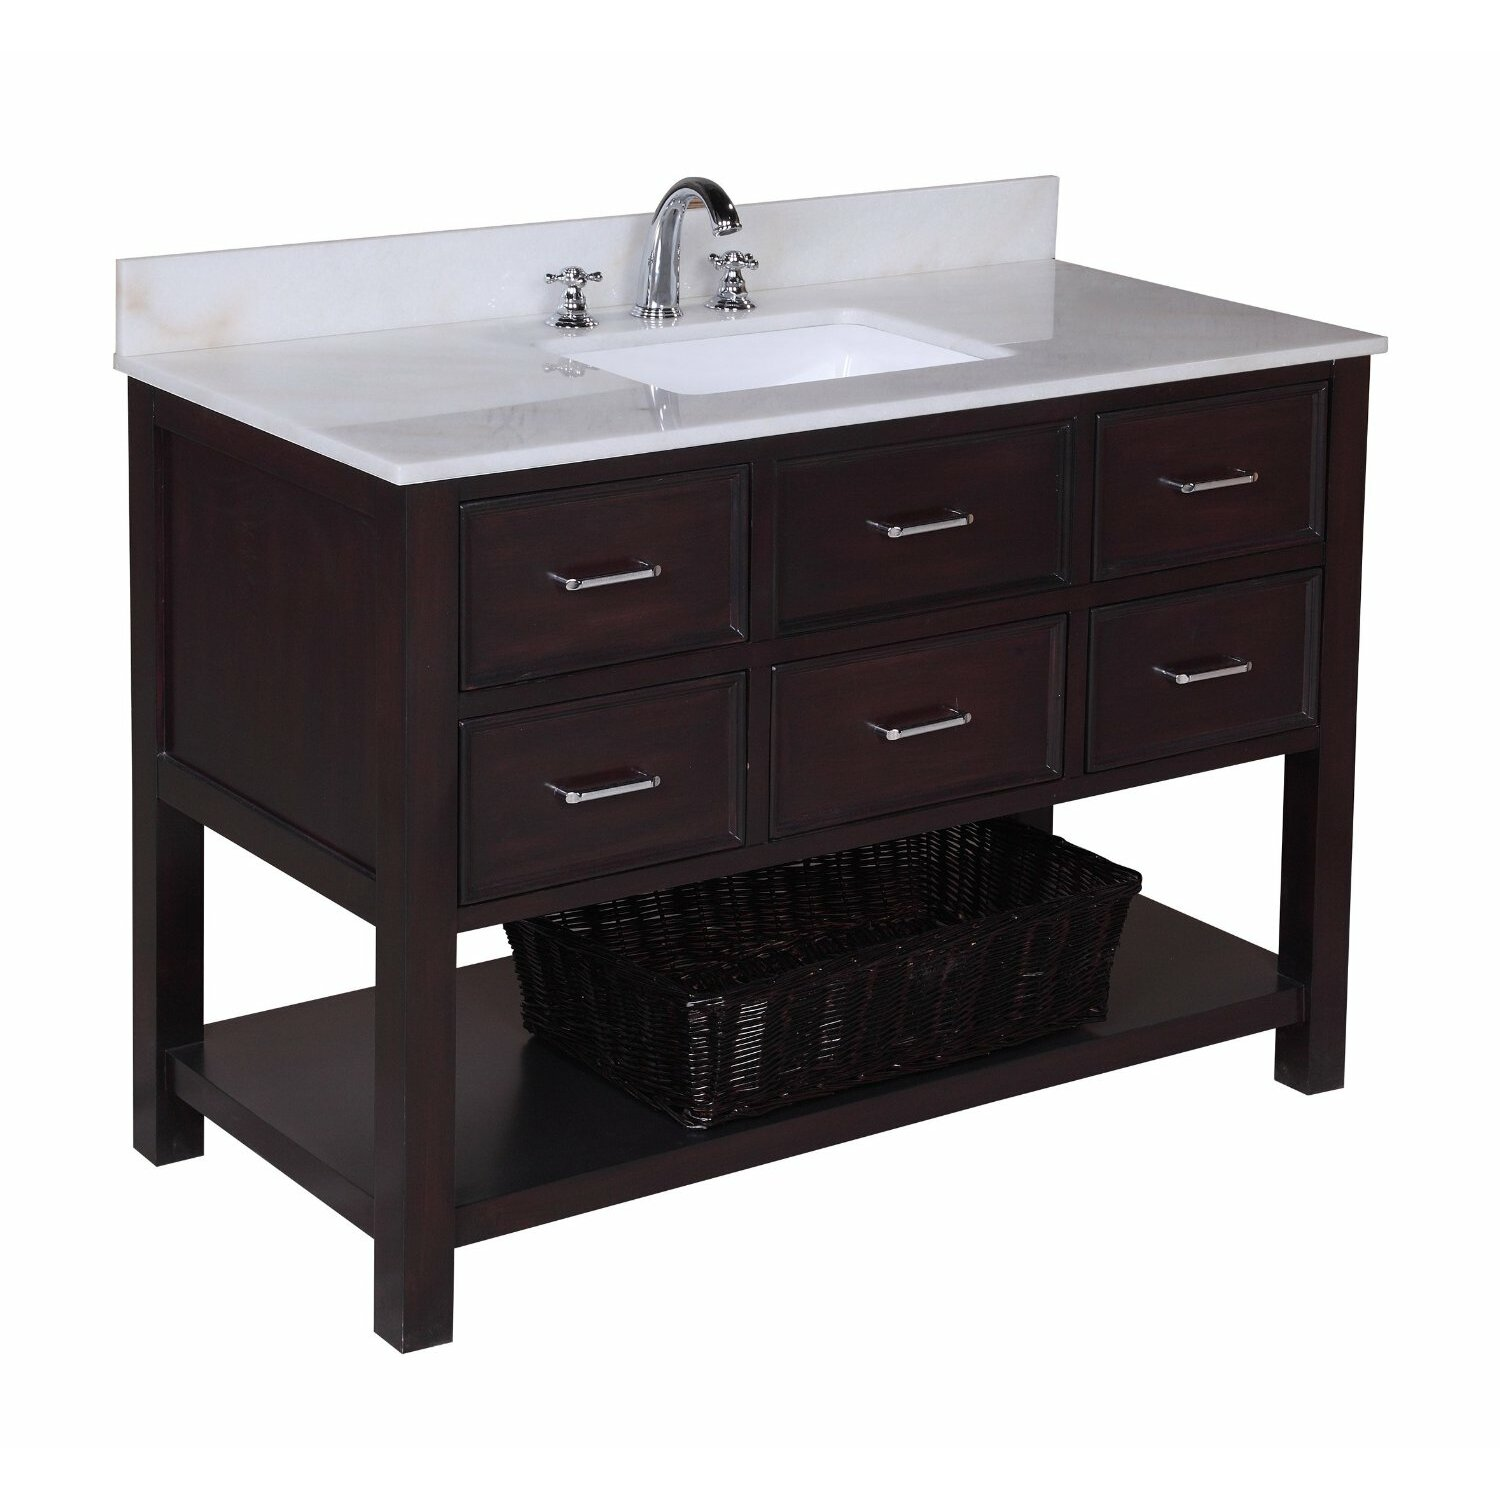 Kbc New Hampshire 48 Single Bathroom Vanity Set Reviews Wayfair Supply